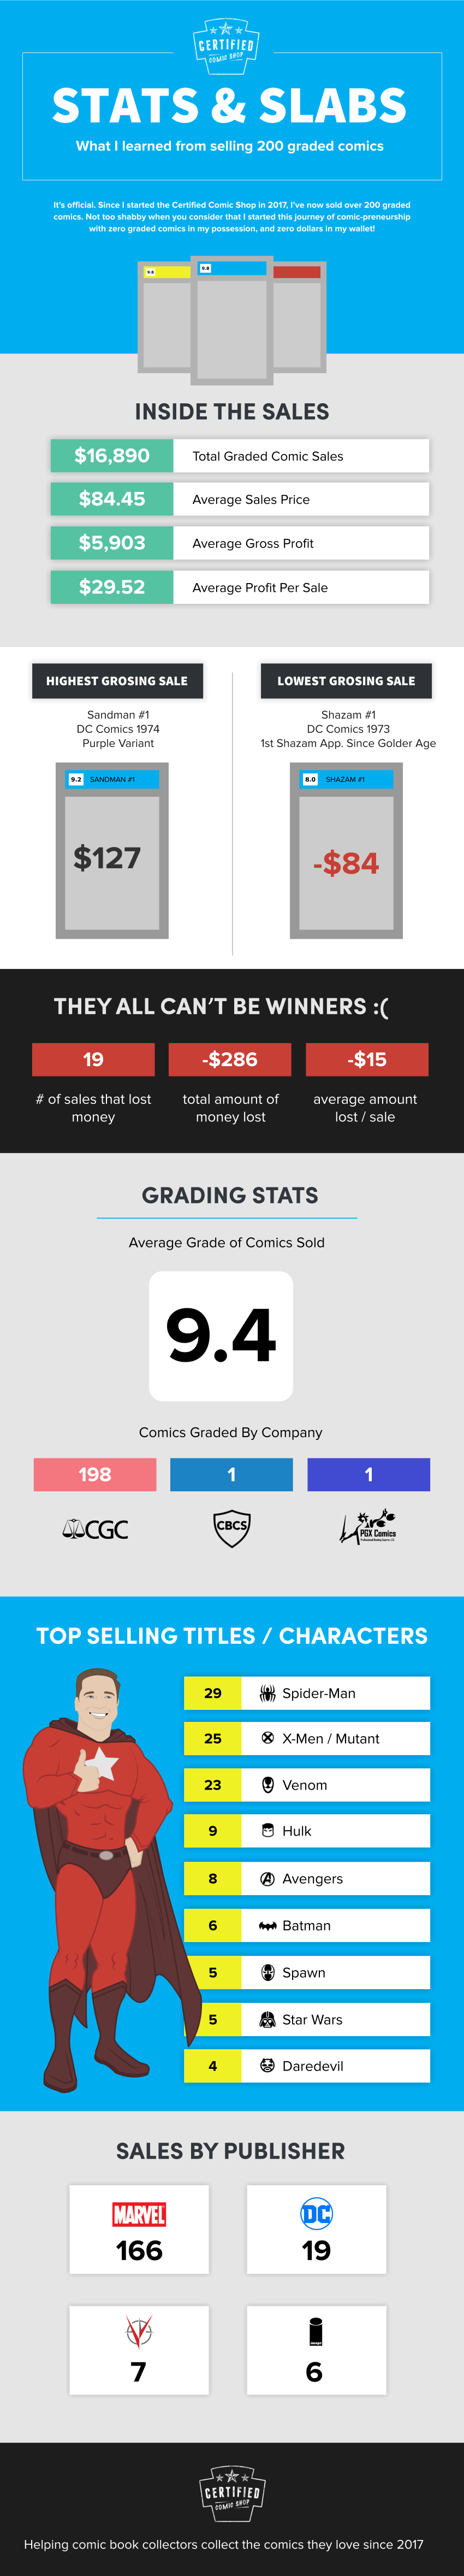 200 Graded Comics Sold Infographic